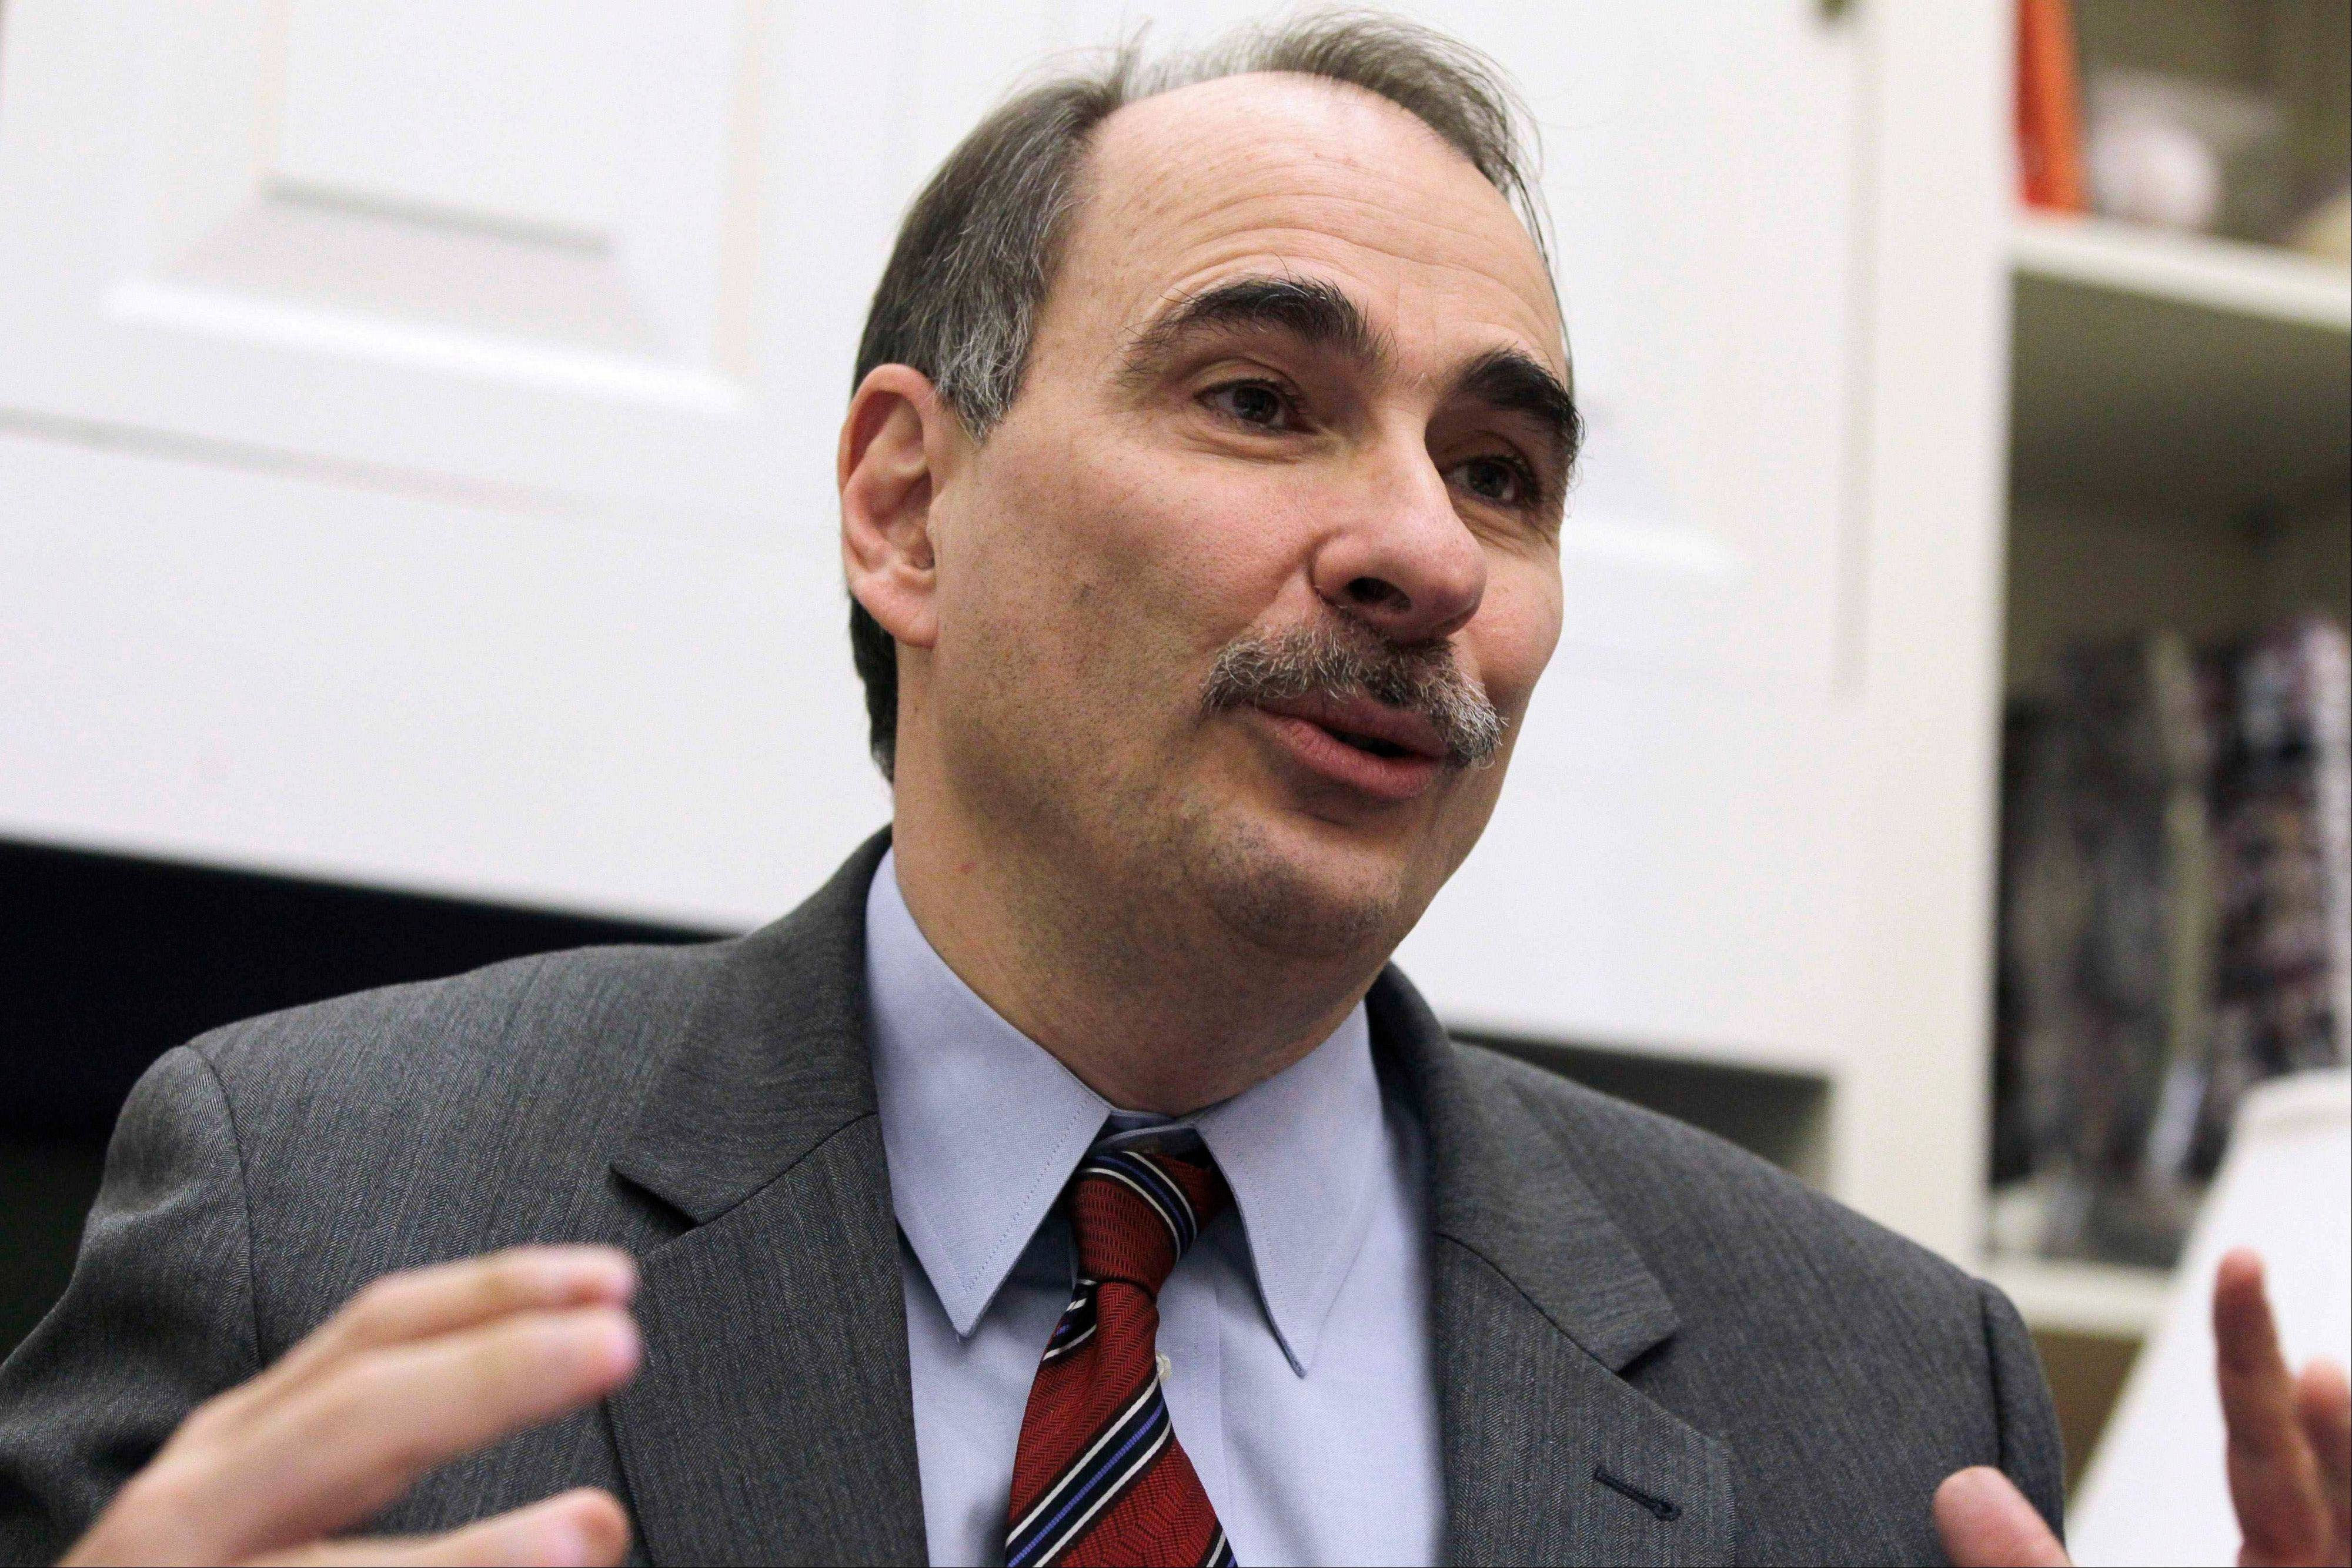 David Axelrod was a calming influence on the Obama 2012 campaign team and helped focus on middle-class voters.